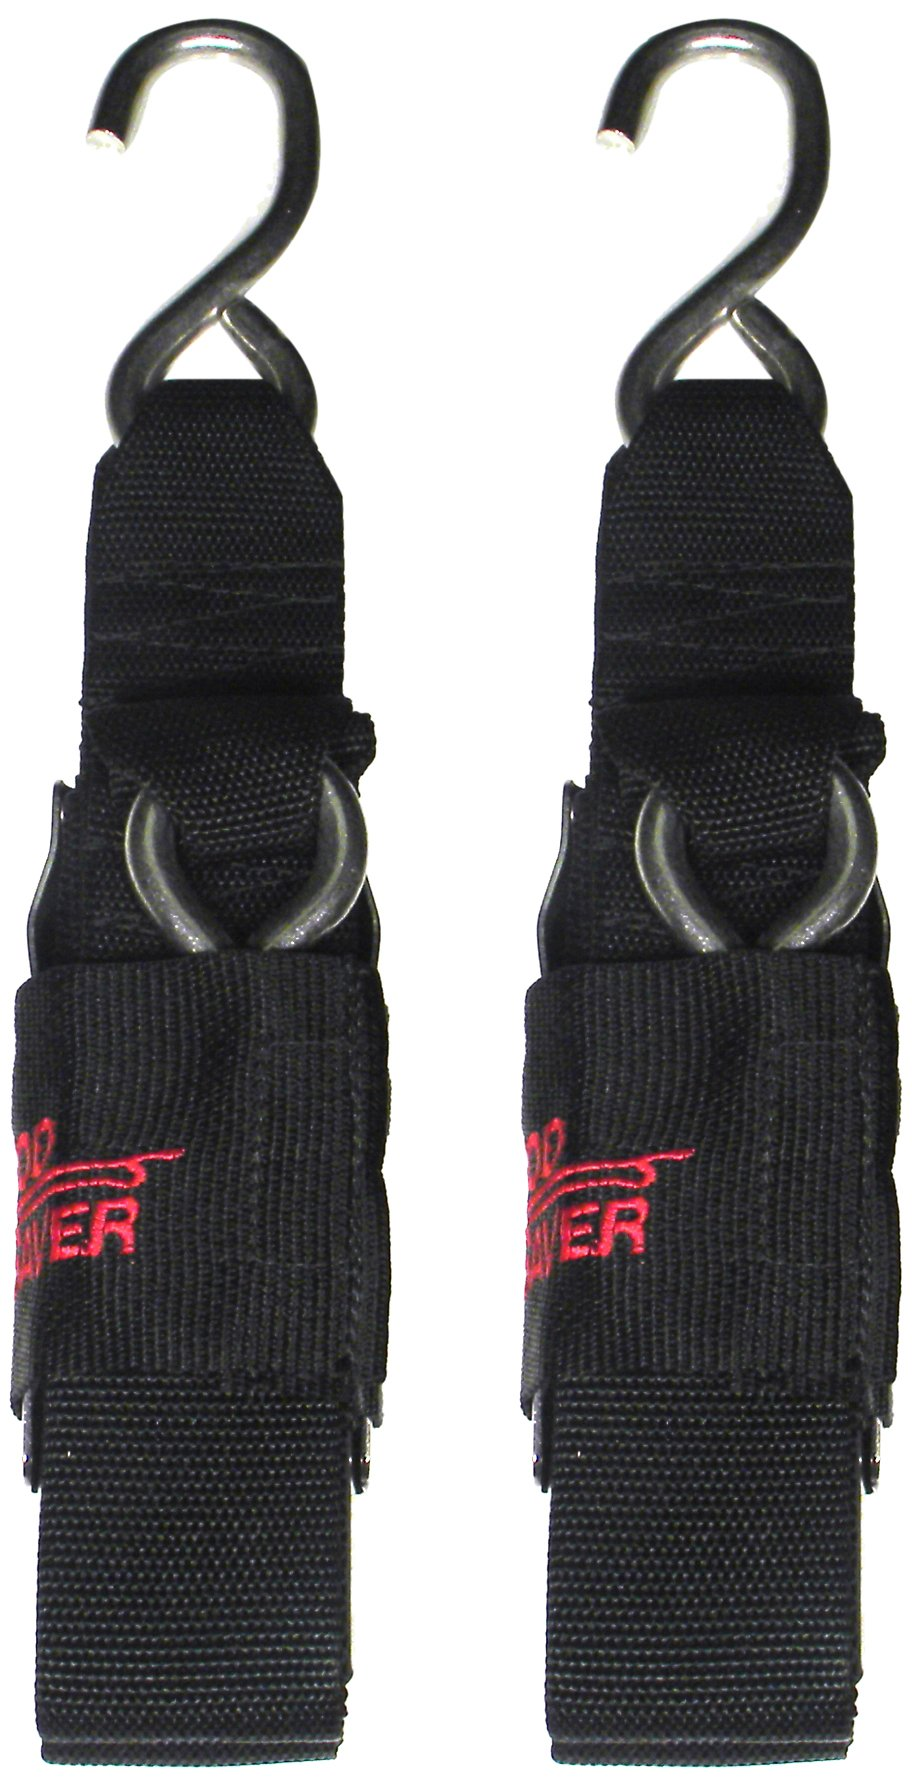 Rod Saver Stainless Steel Overcenter Buckle 3' Tie-Down by Rod Saver